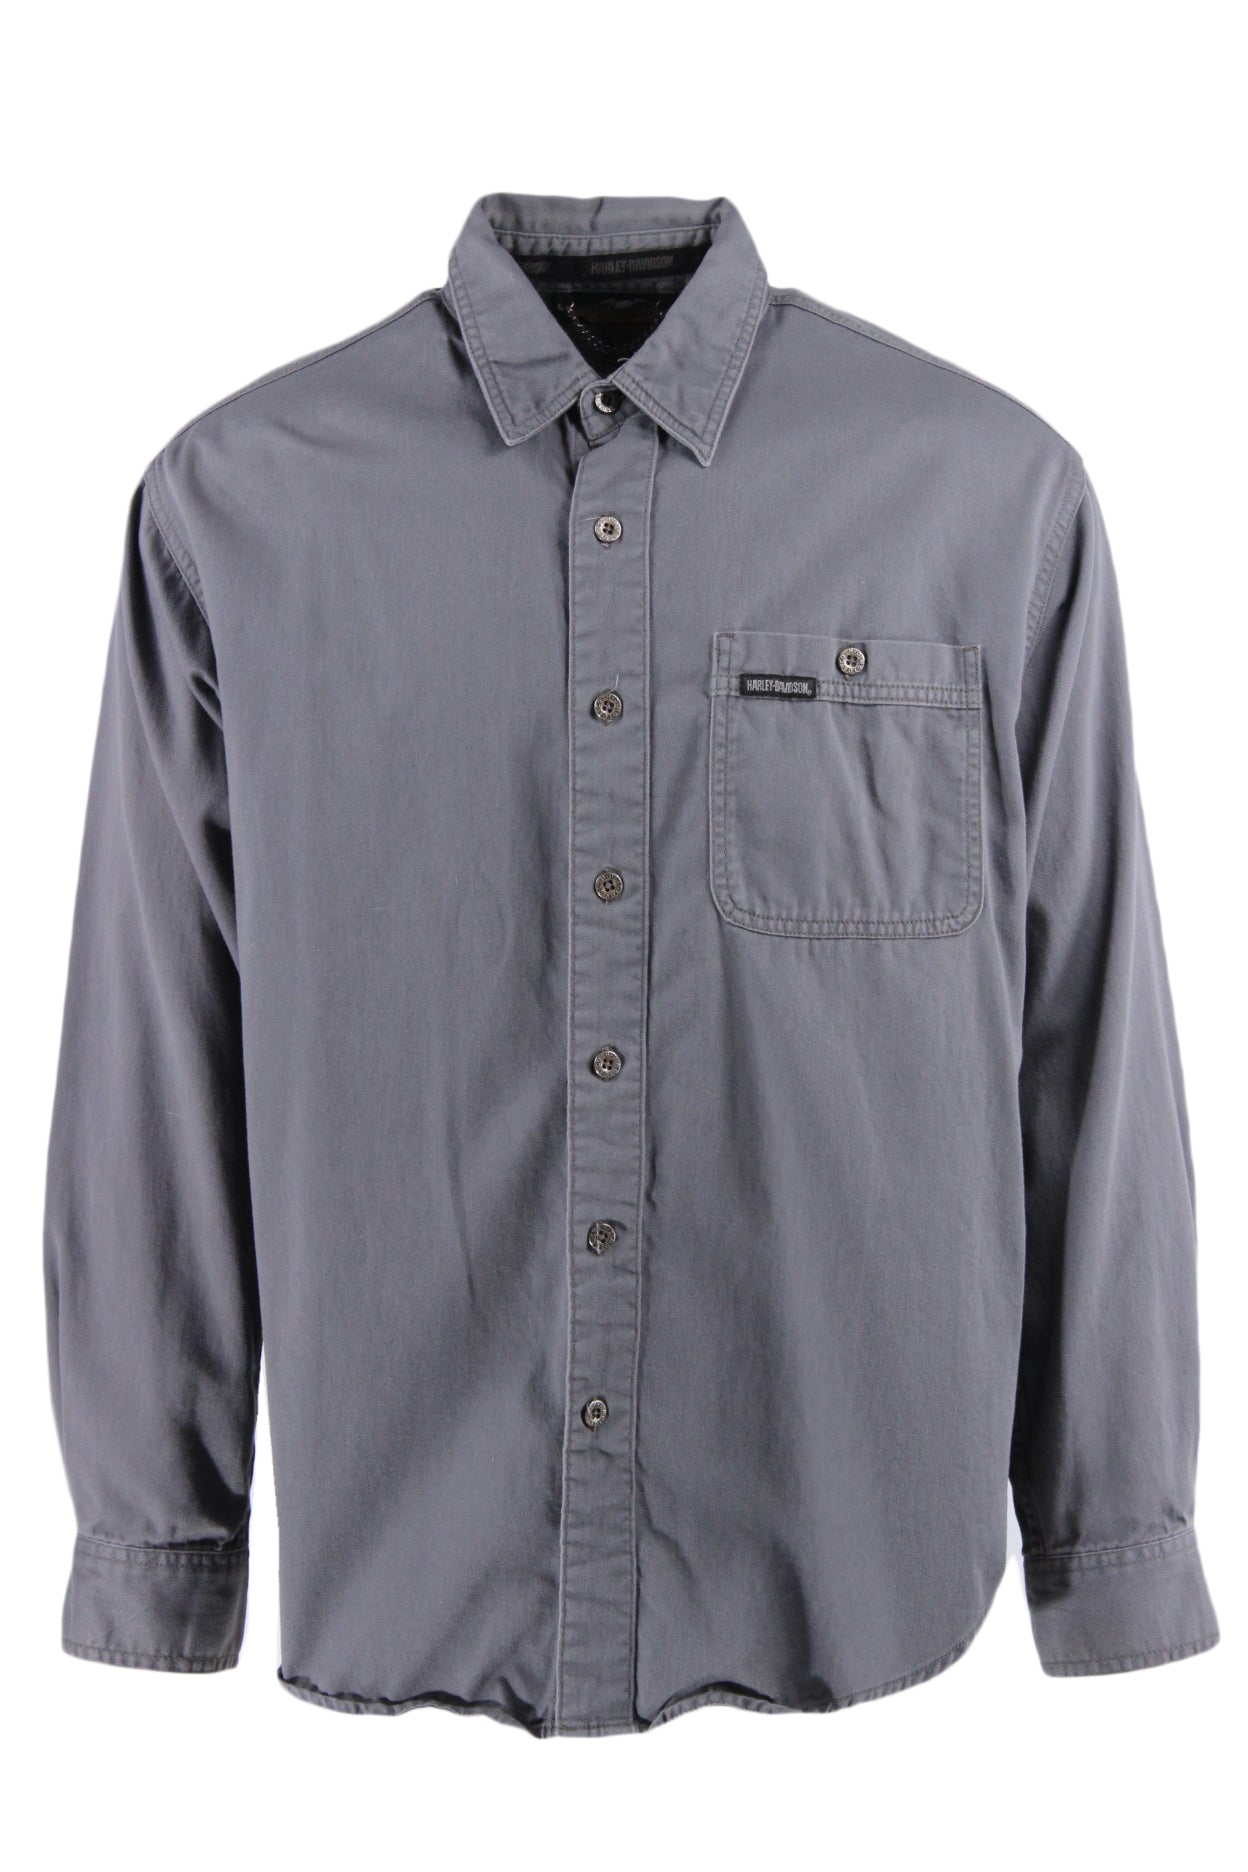 harley-davidson grey long sleeve button up shirt. features logo tag on left breast pocket and logo embroidered at back.